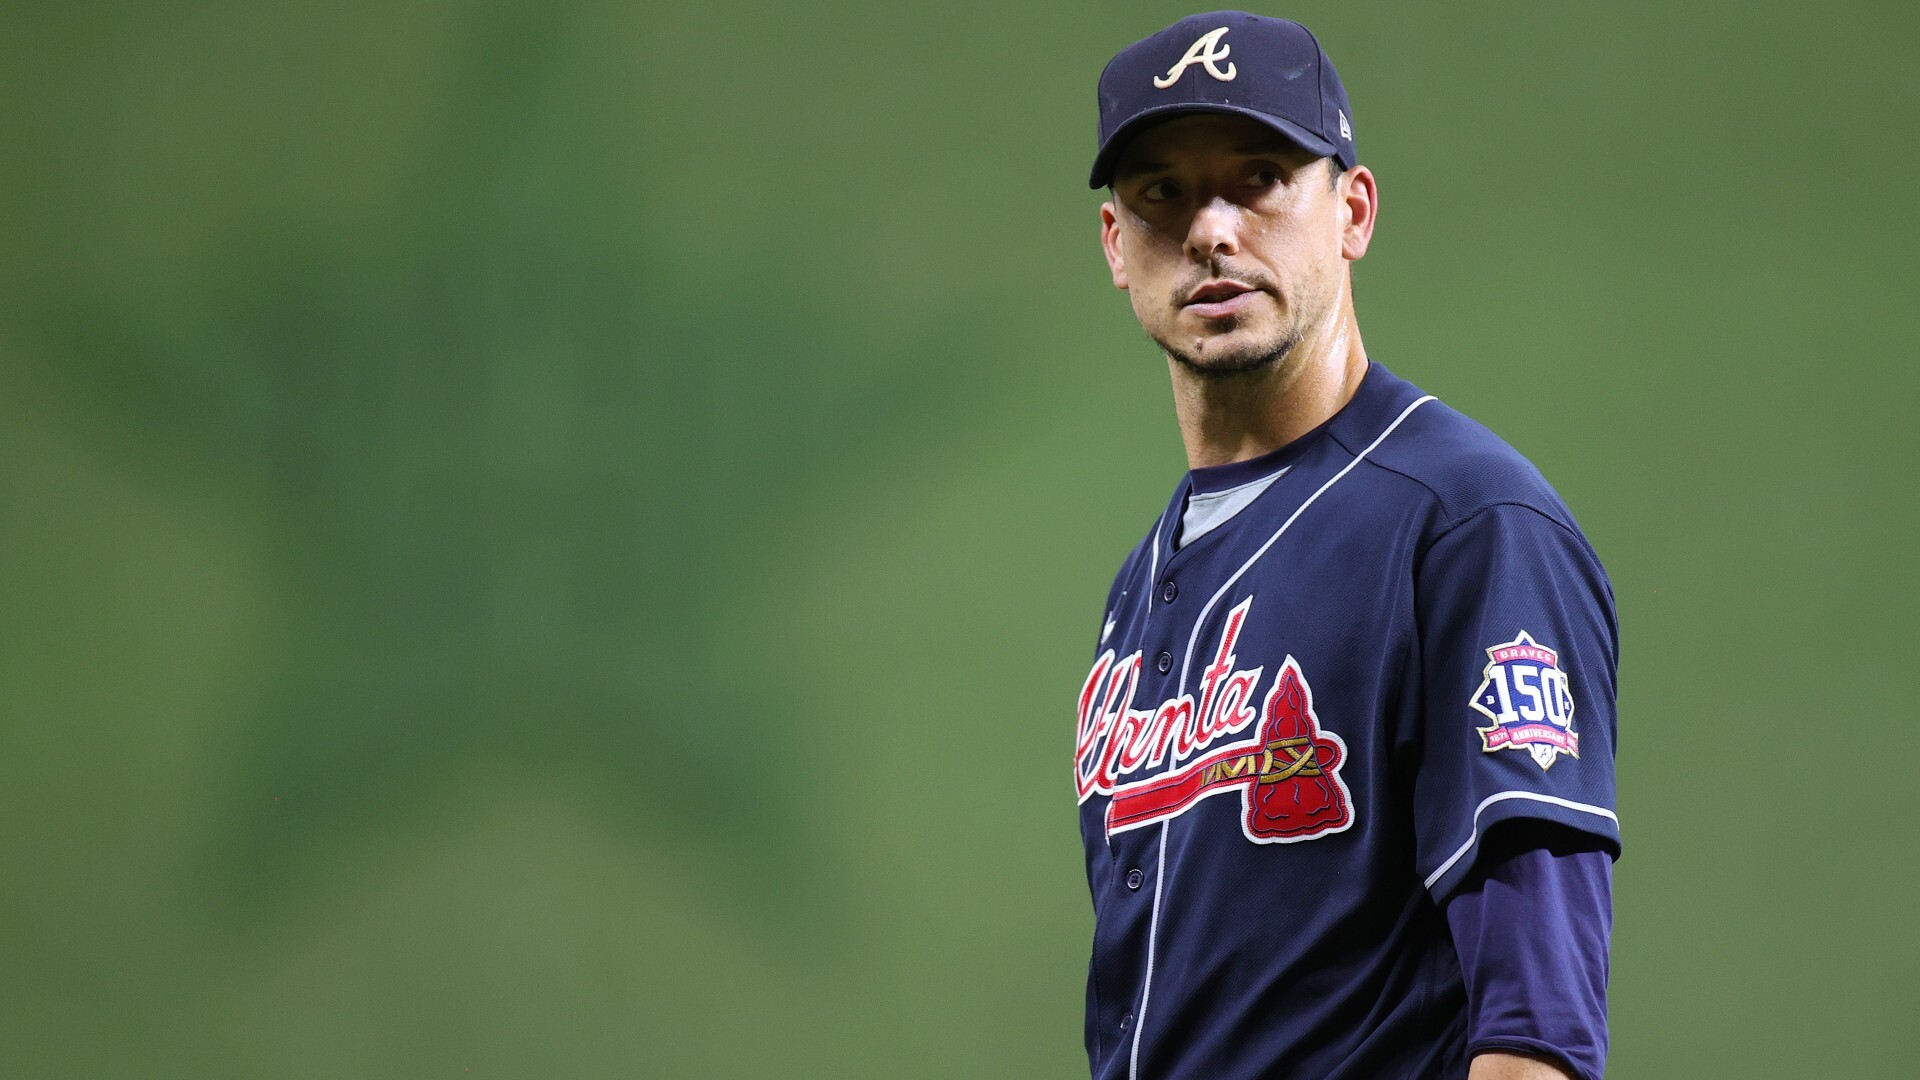 Charlie Morton injury update: Braves' Game 1 starter to miss rest of World Series with fractured fibula